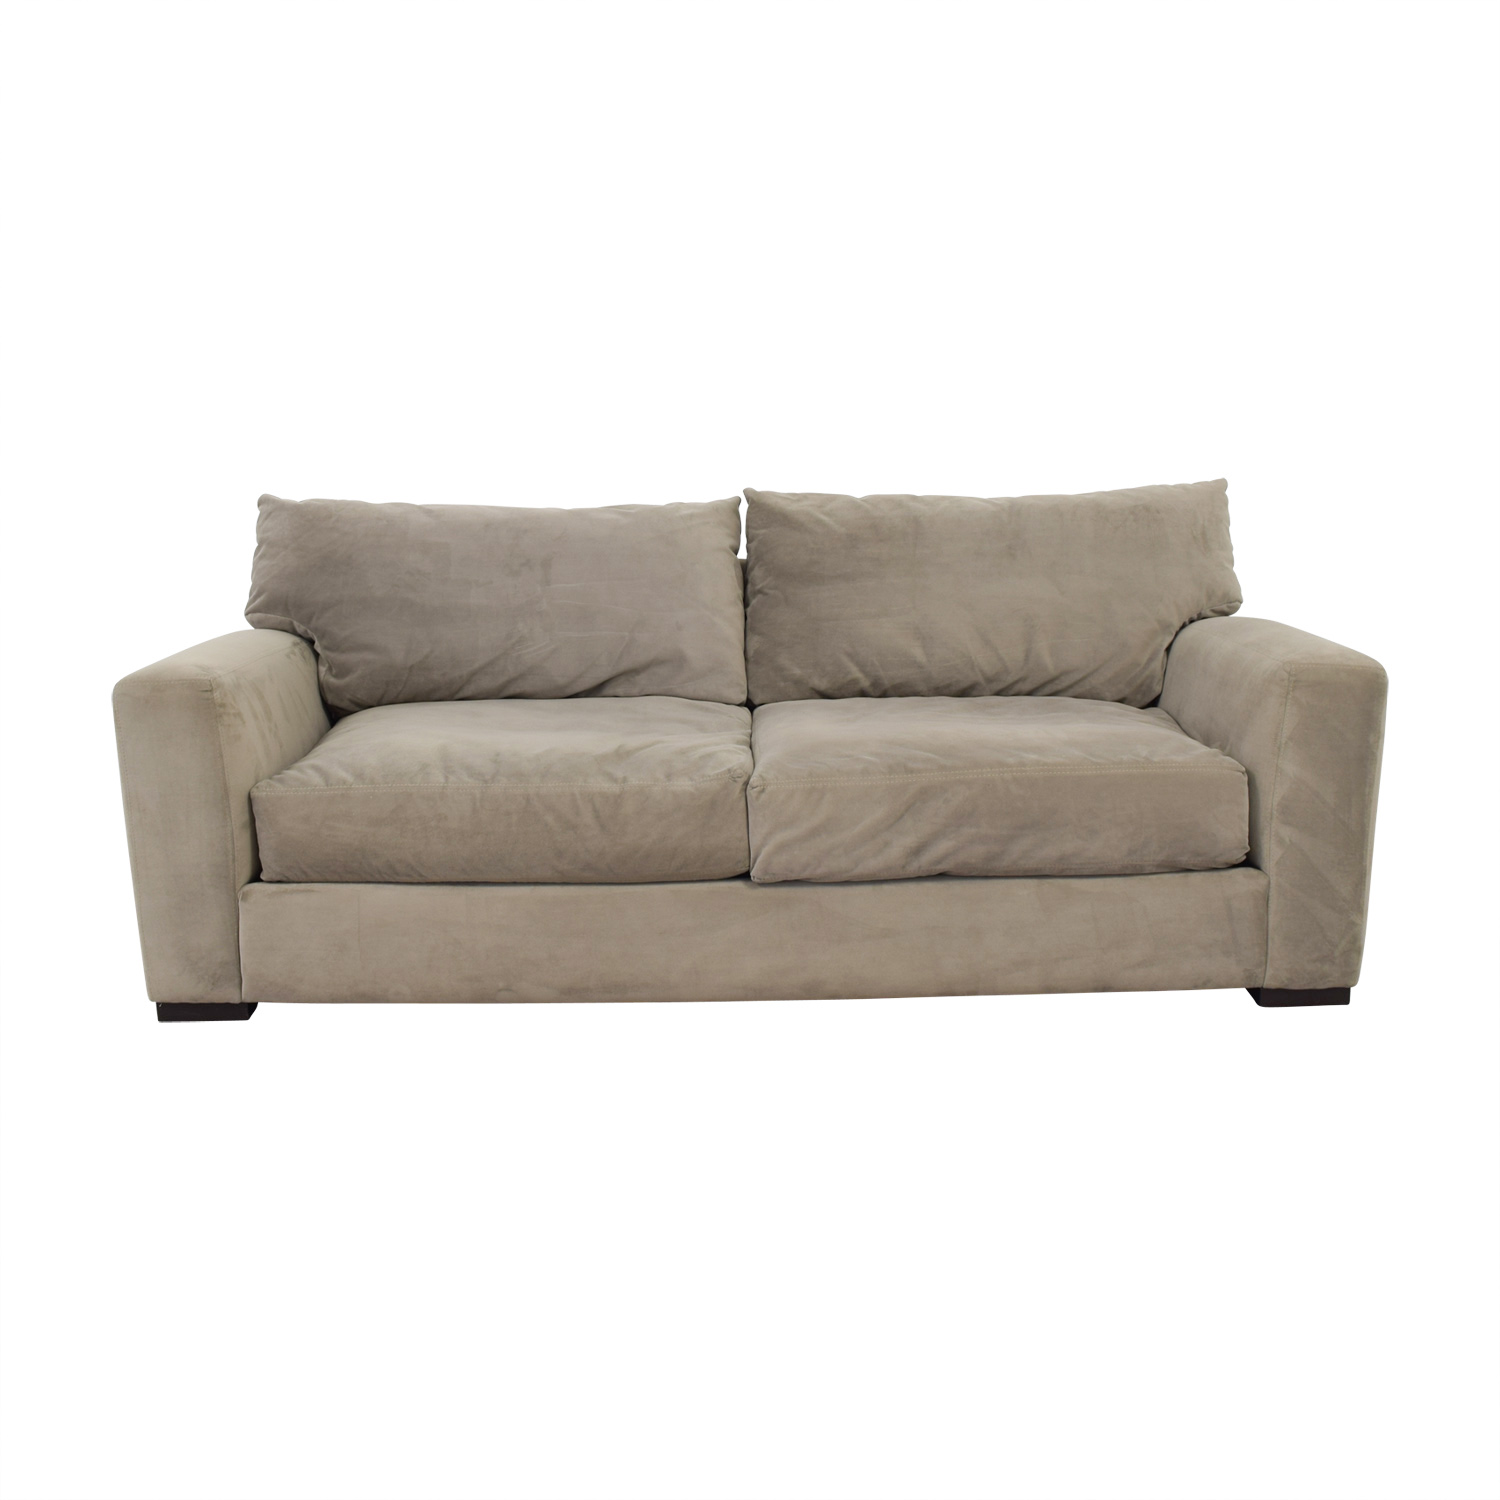 Raymour Flanigan Grey Carlin Microfiber Sofa Price